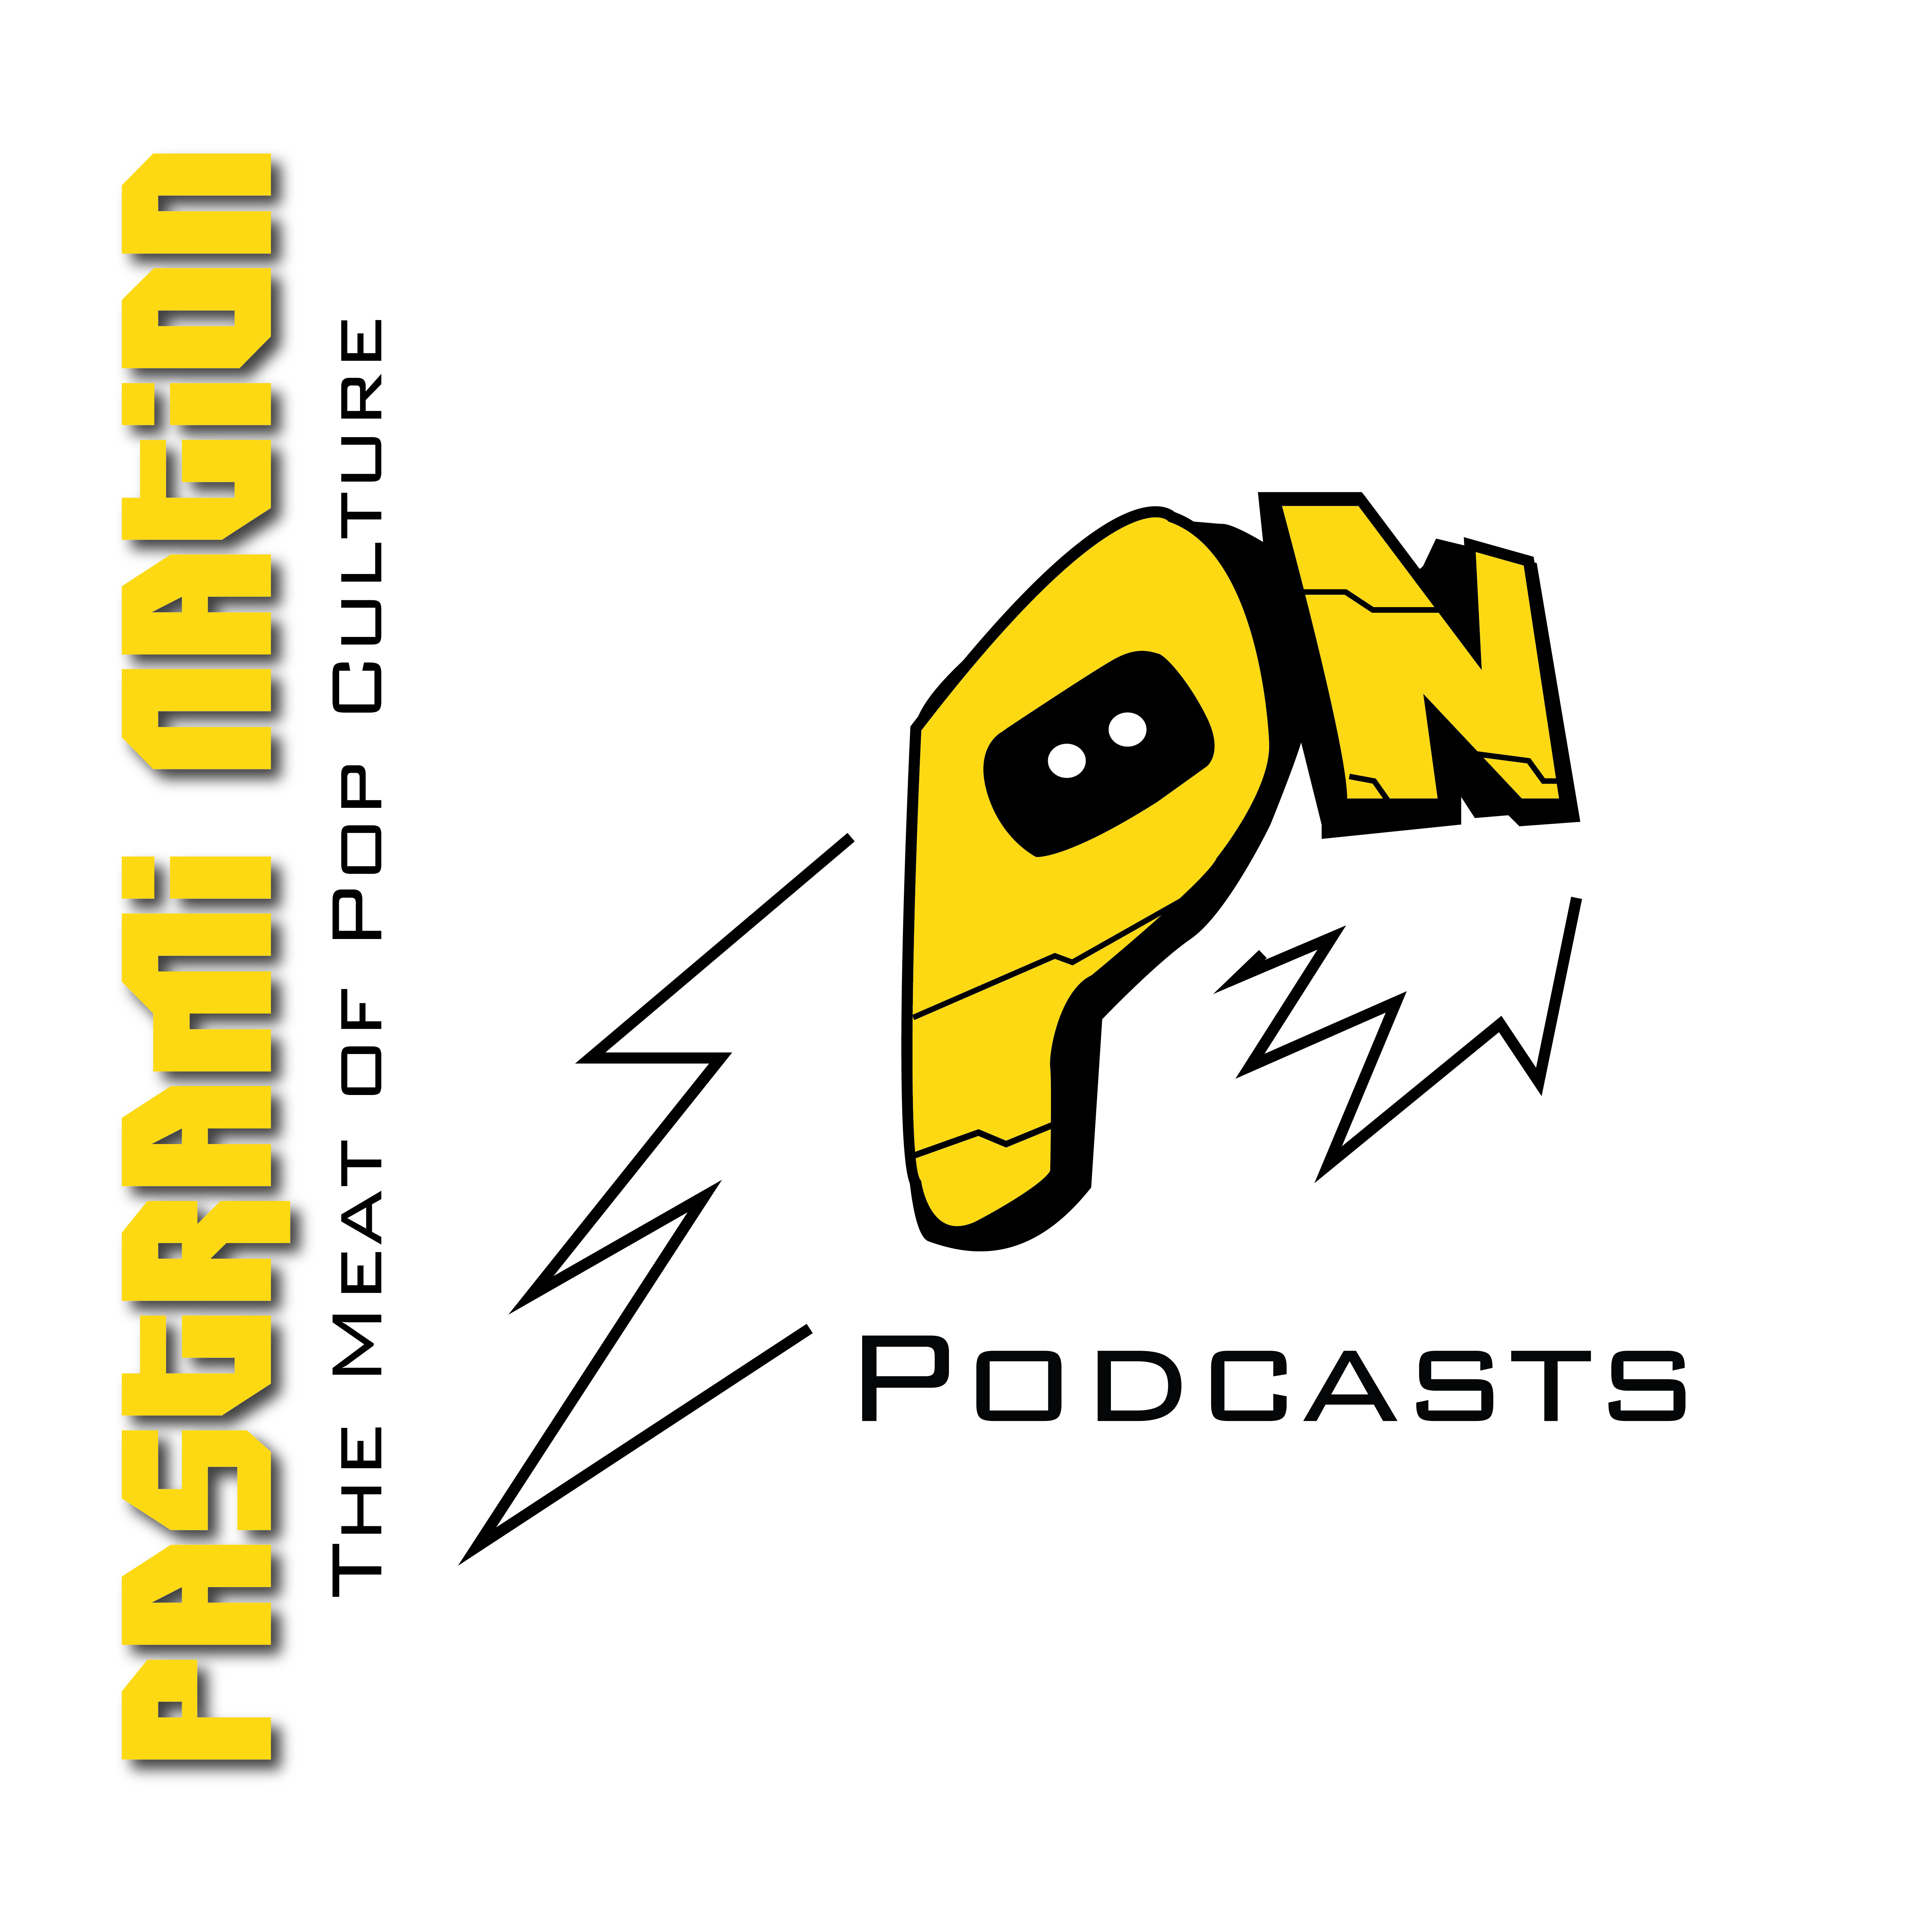 Pastrami Nation Podcast: The Star Wars Spectacular